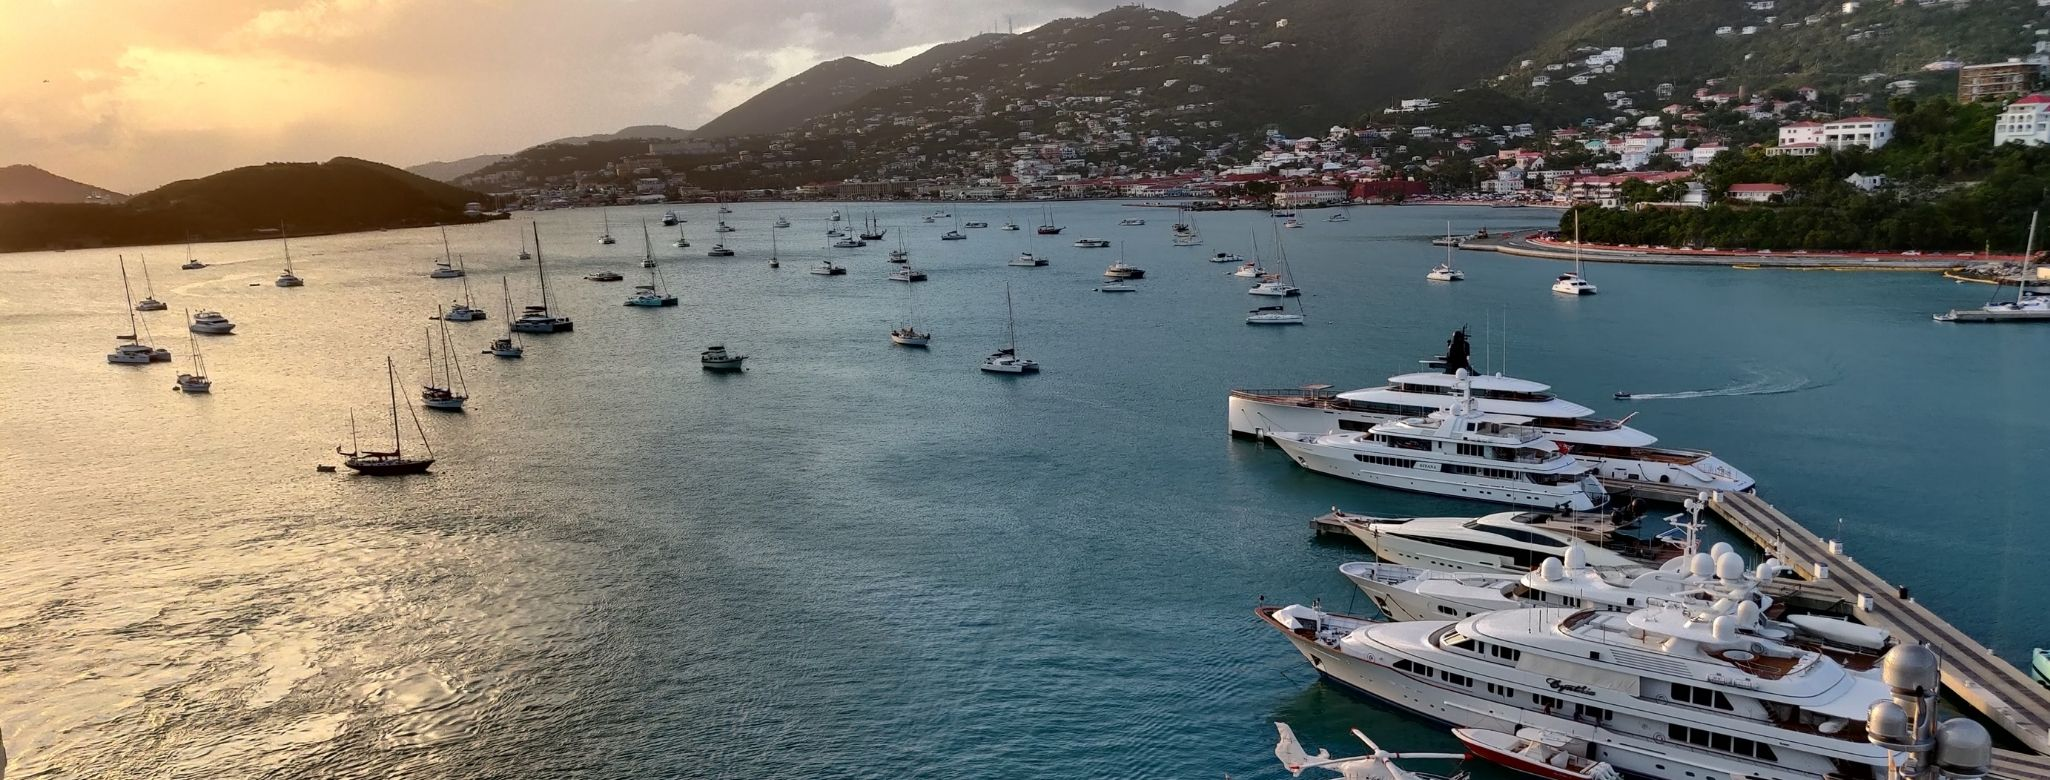 many boats and yachts sailing thorugh the US virgin islands on a sunset